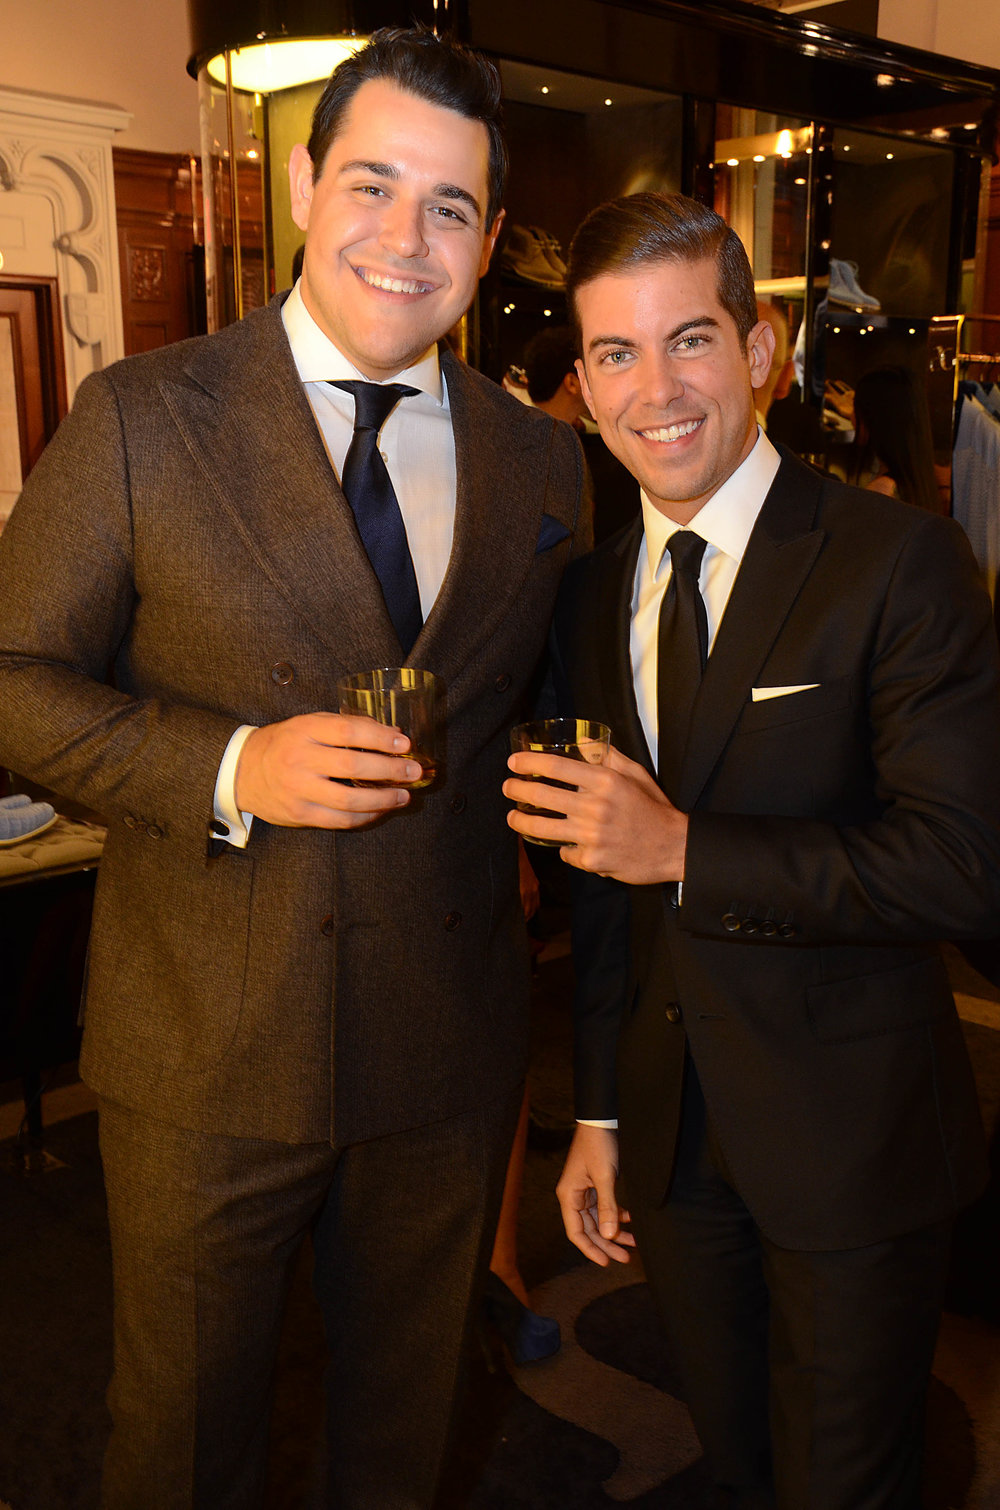 Manhattan Magazine and Platinum Poire Event 10.15.15 - photo by Andrew Werner, AHW_2718.jpg